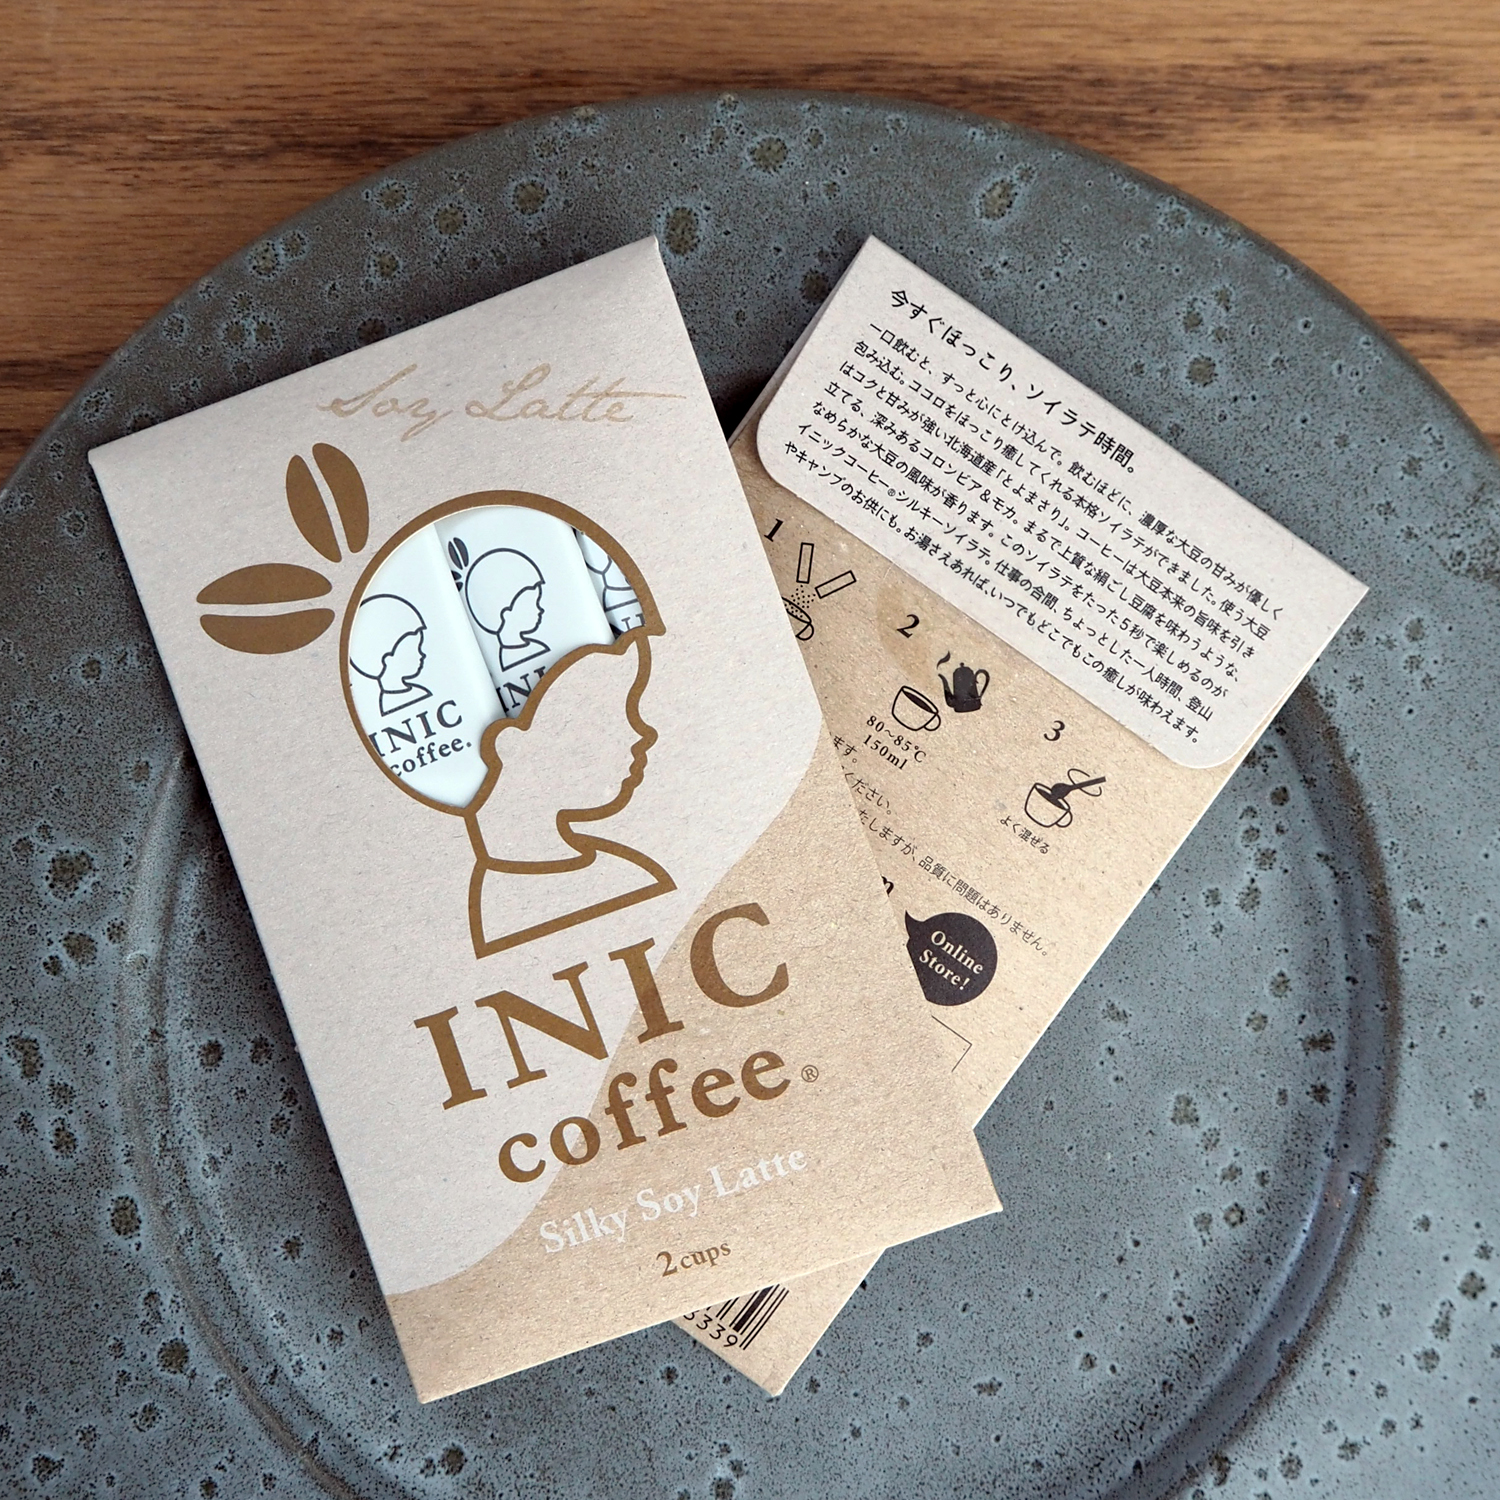 INIC coffee Silky Soy Latte